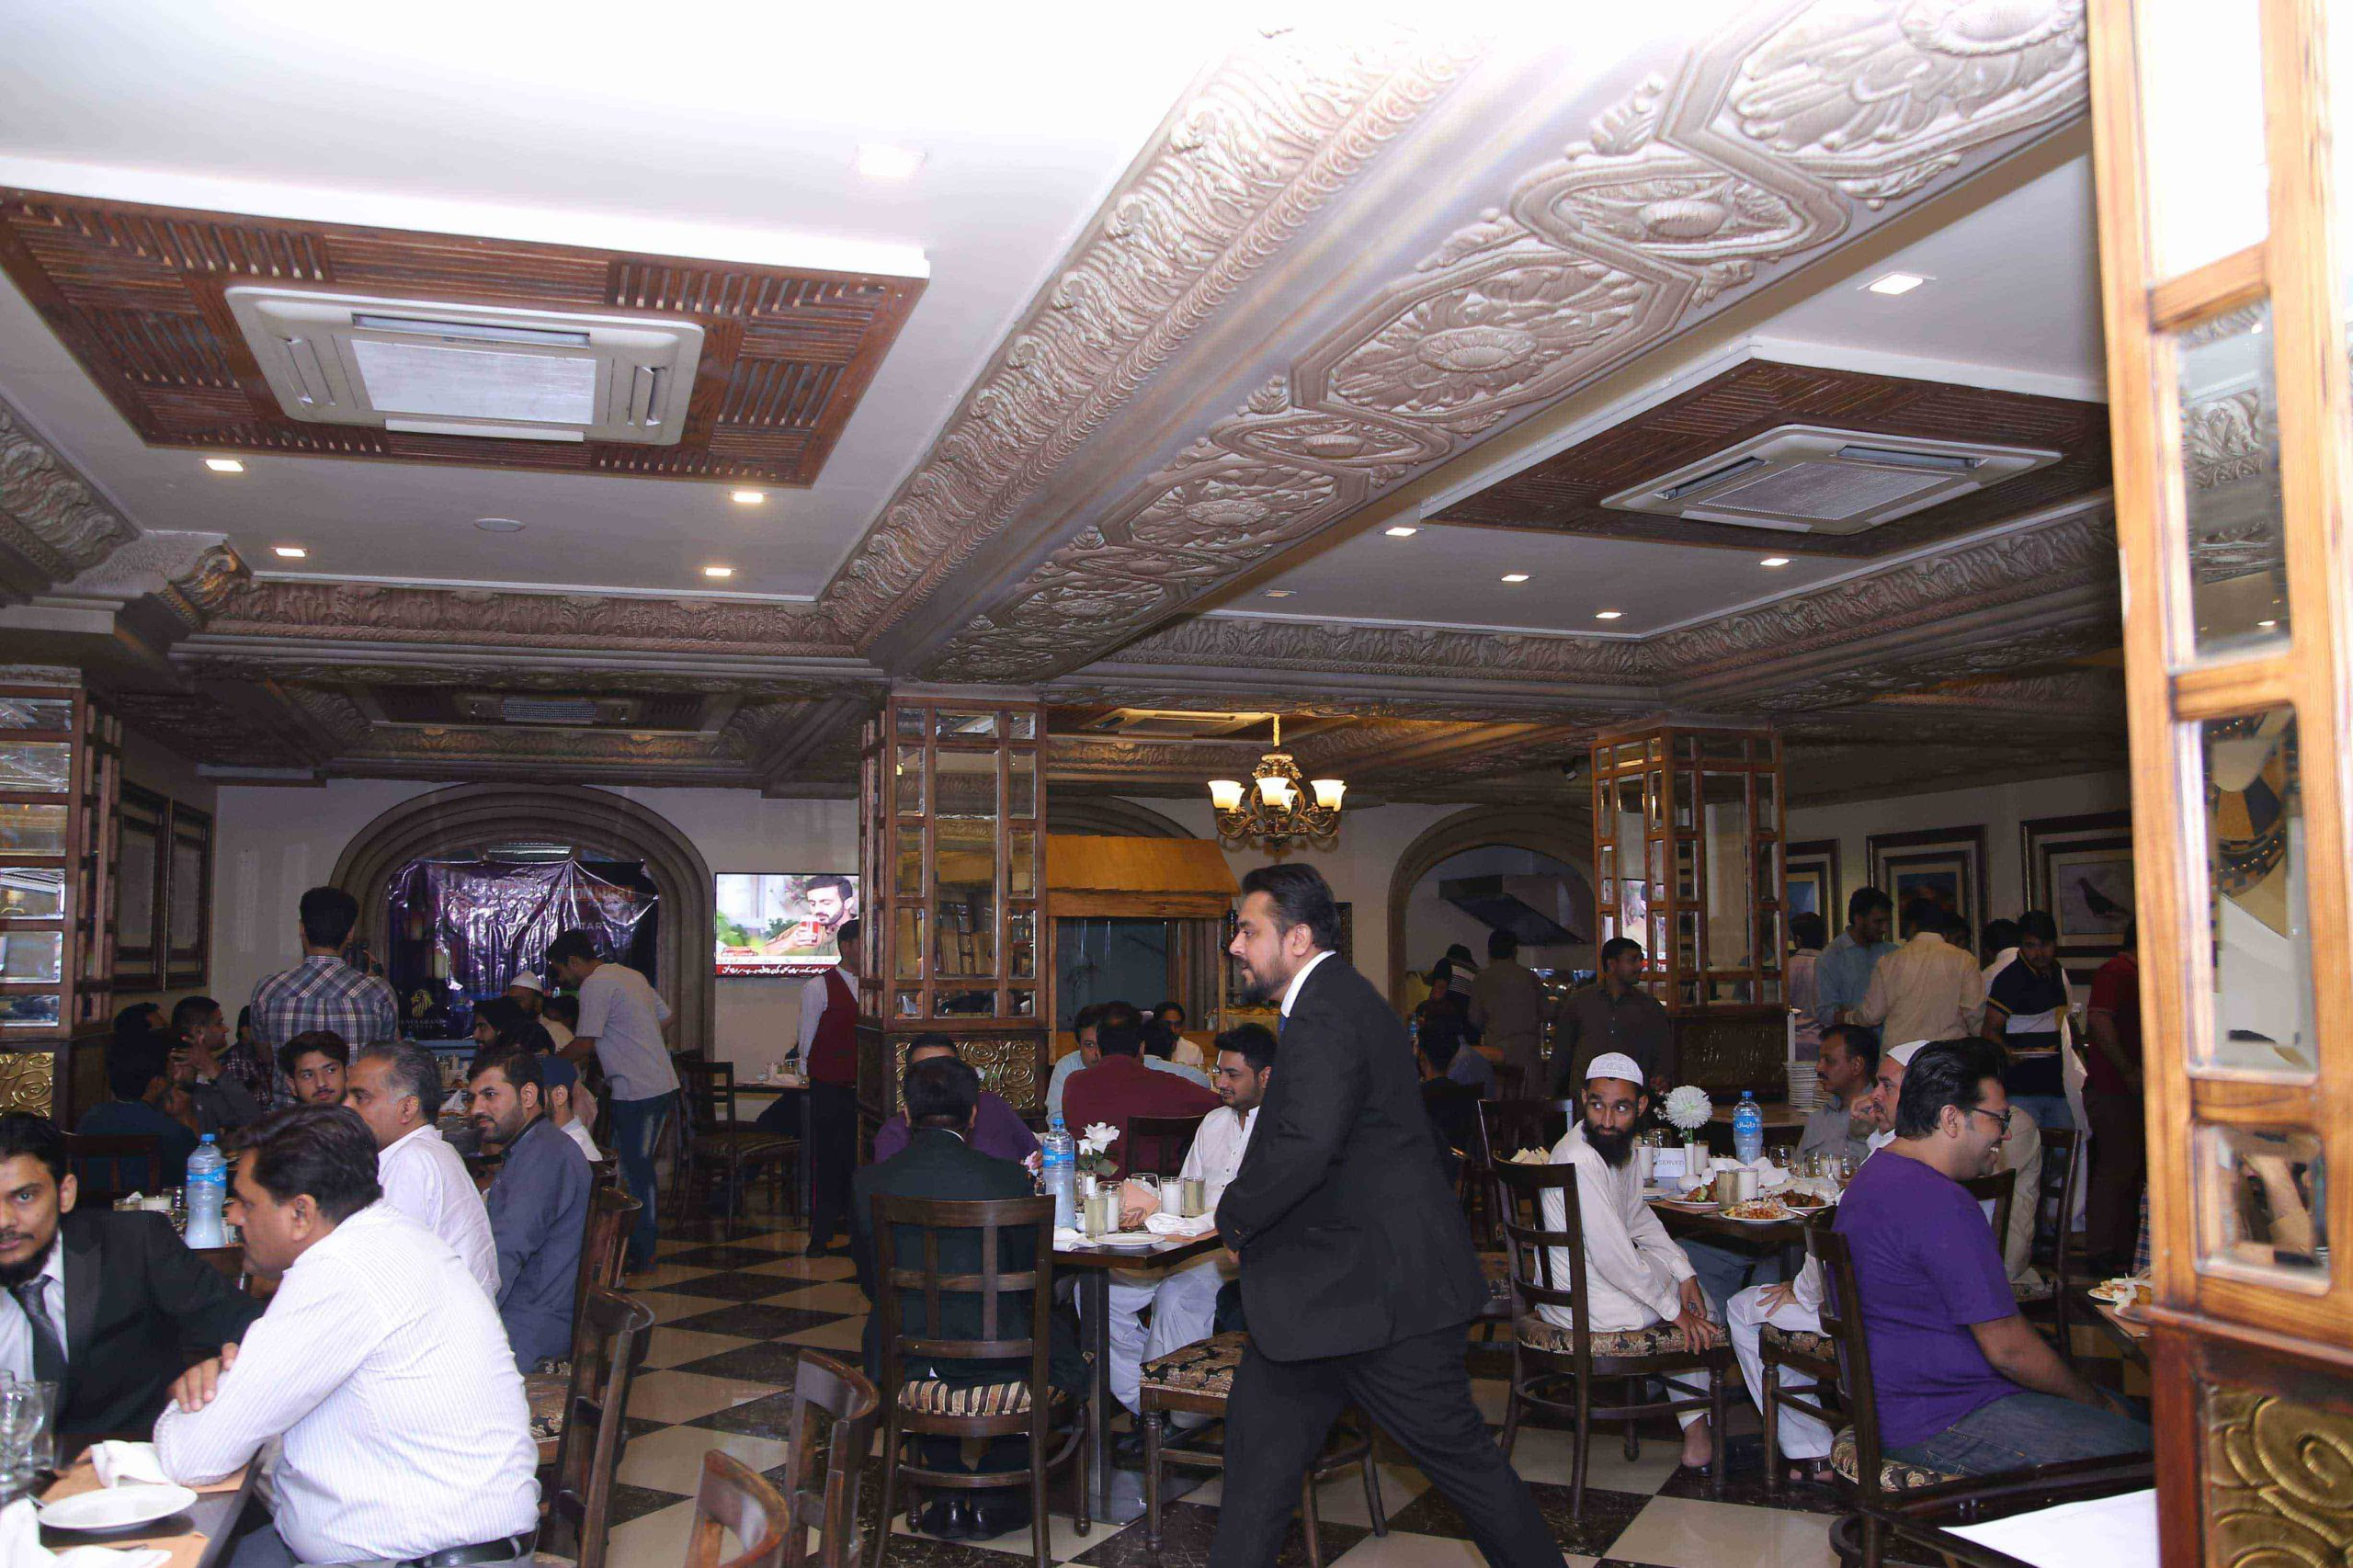 STAFF_ANNUAL_DINNER_&_IFTAR_PARTTY_38